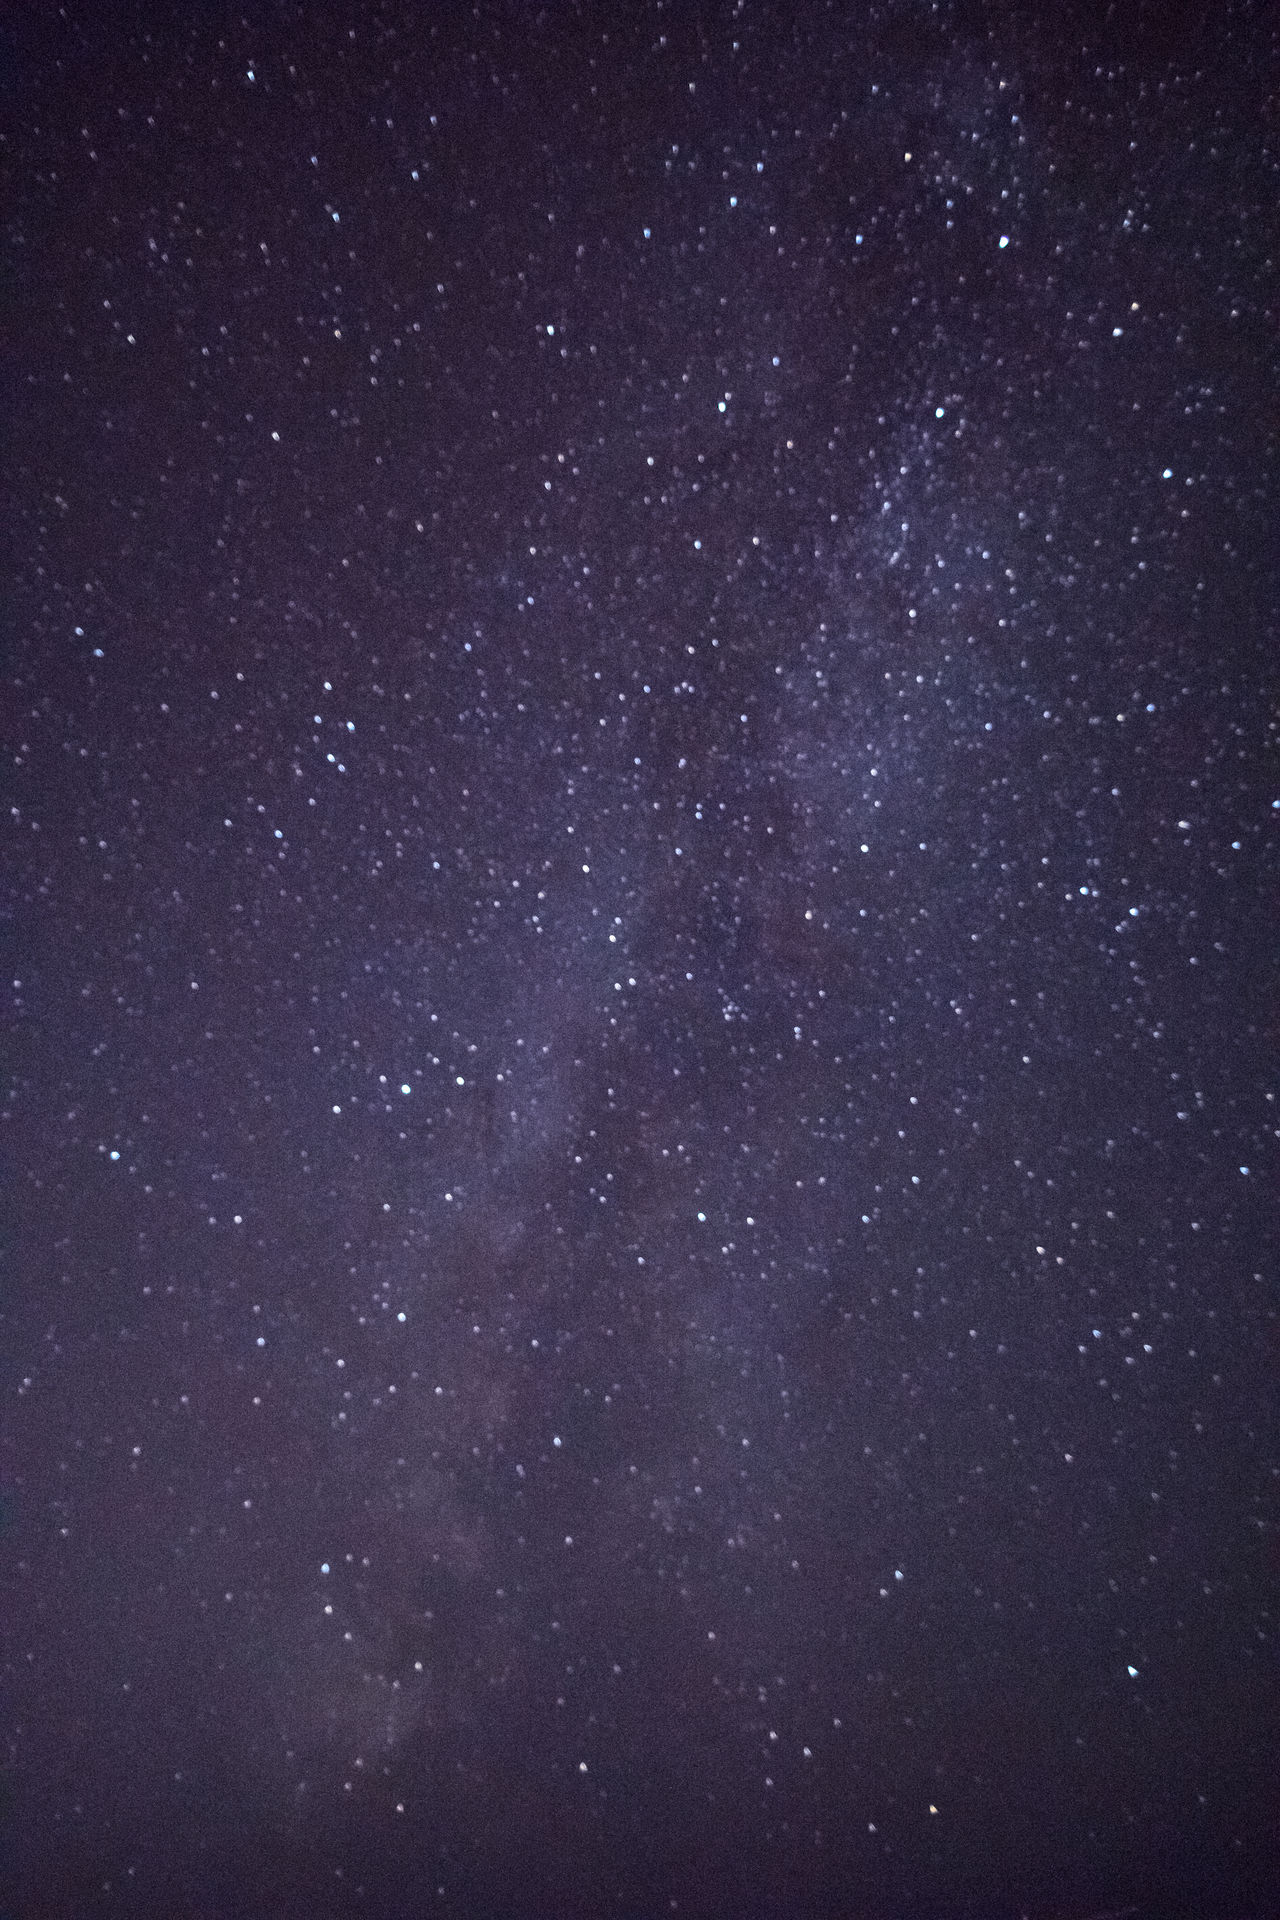 Astronomy Backgrounds Beauty In Nature Ethereal Fantasy Fresh On Eyeem  Galaxy Glowing Idyllic Infinity Large Group Of Objects Low Angle View Majestic Mystery Nature Night Outdoors Scenics Sky Sky Only Space Star - Space Star Field Tranquil Scene Tranquility